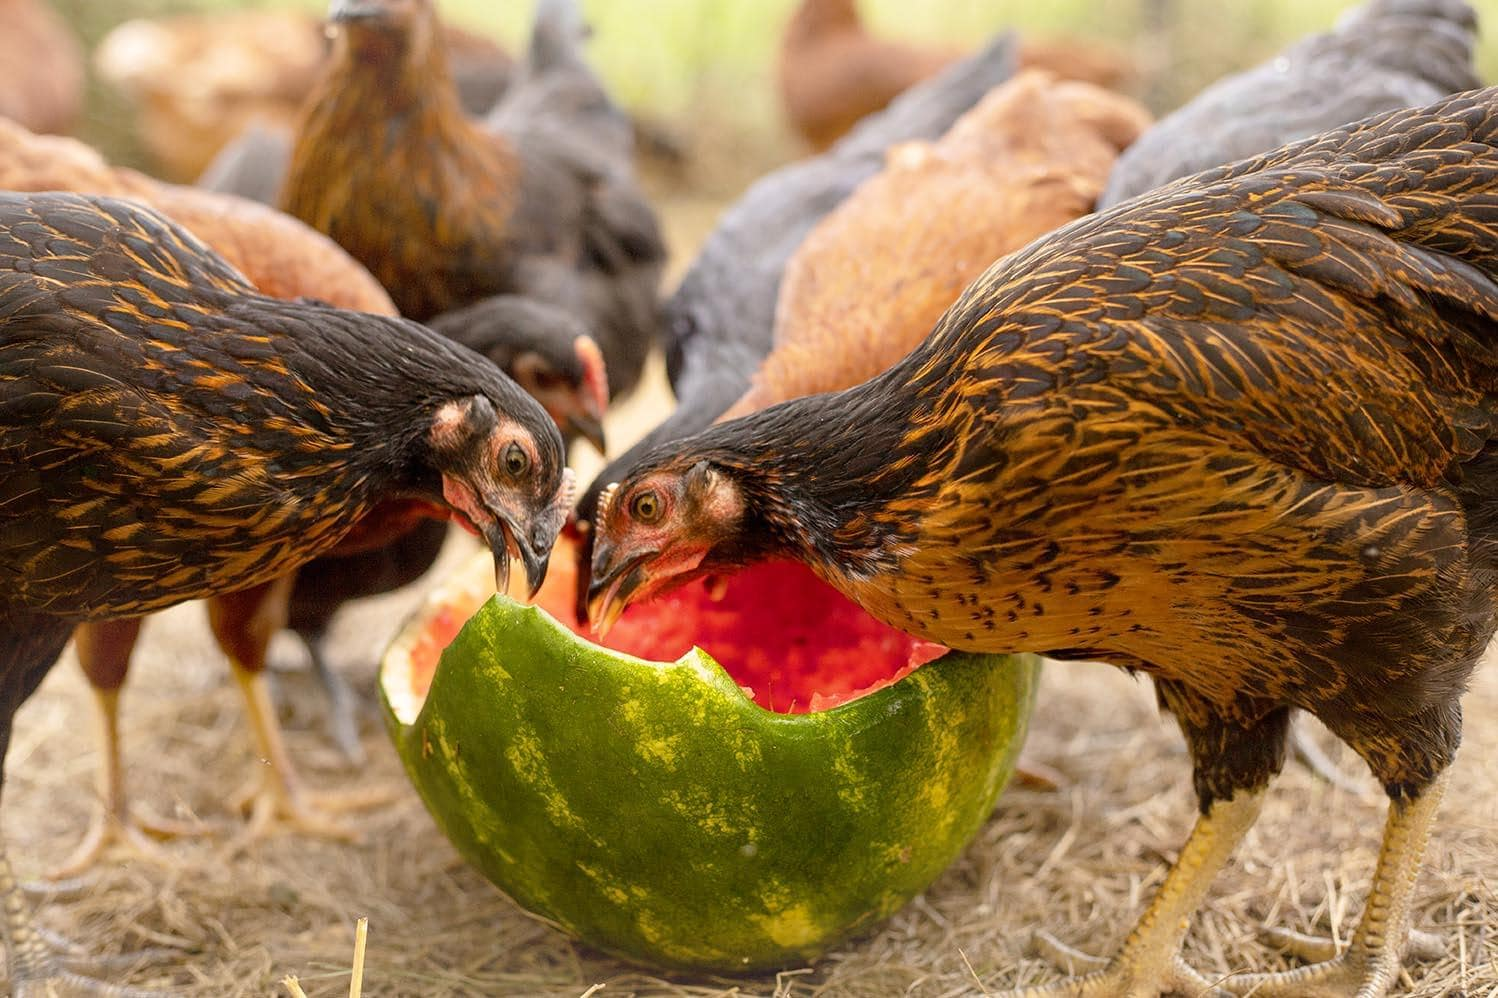 chickens eating watermelon rind